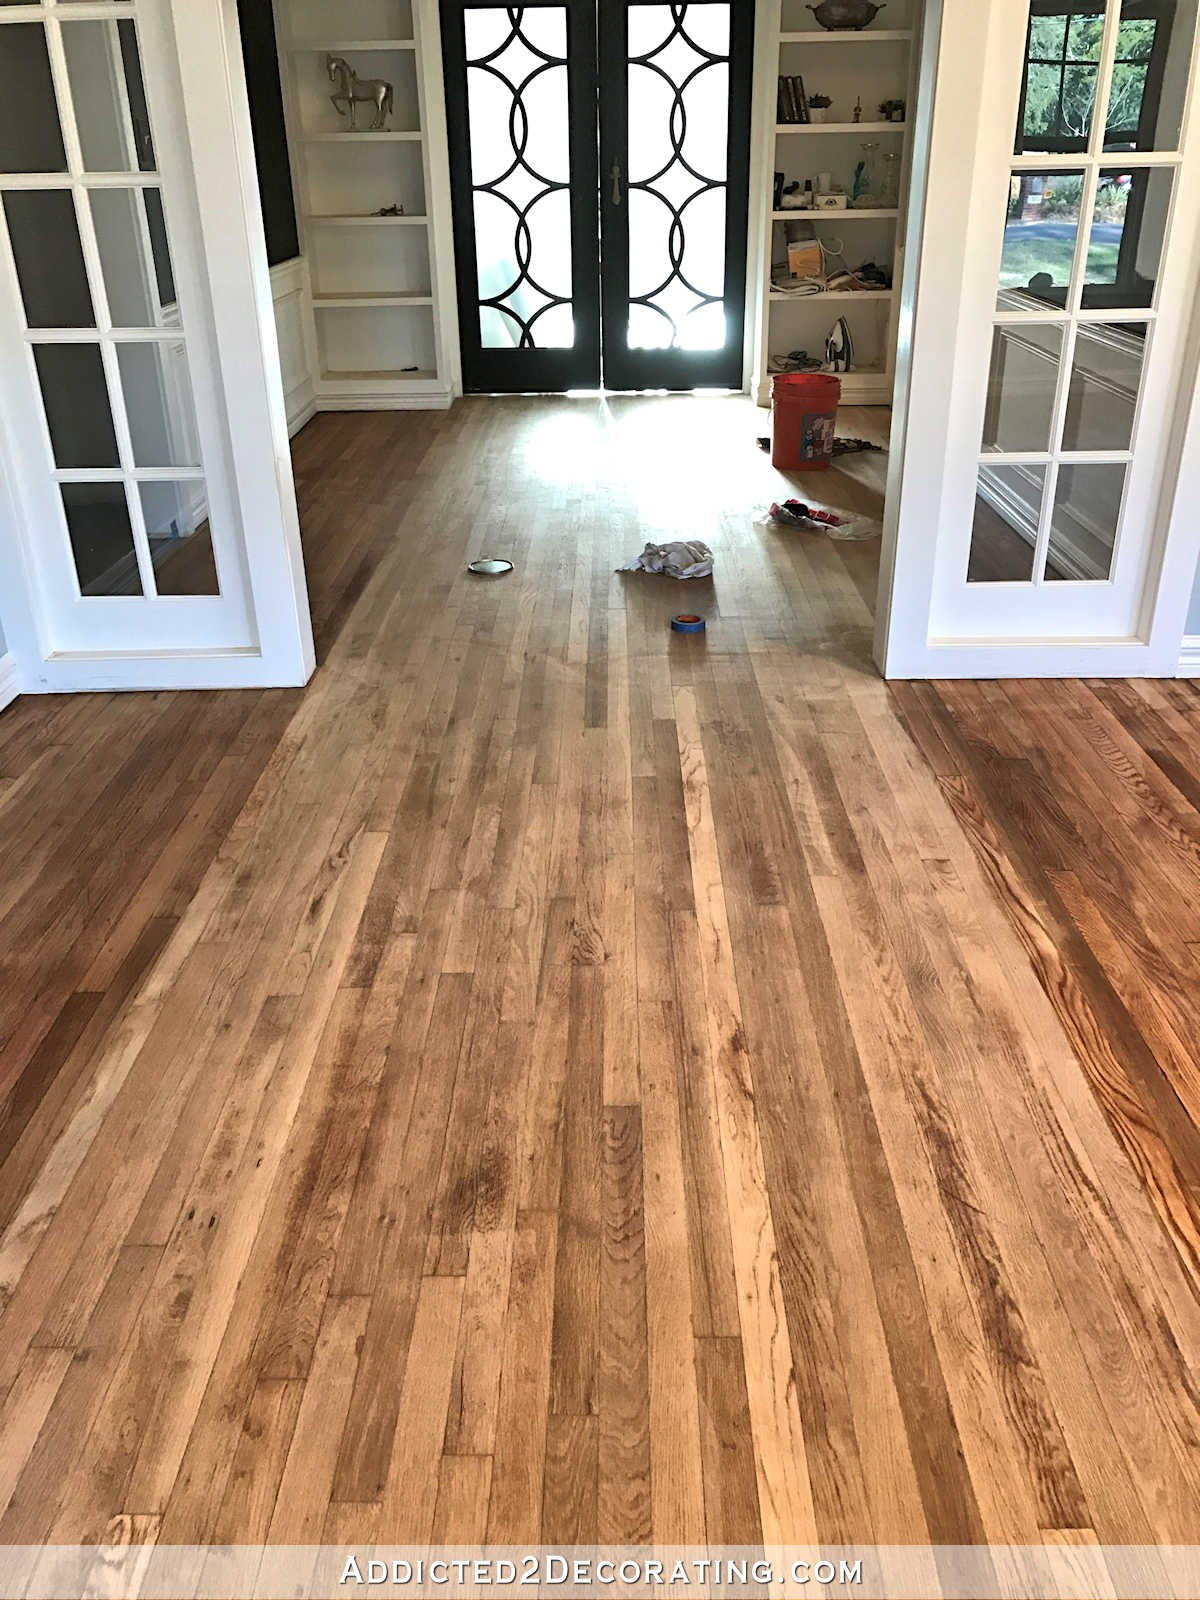 how do you refinish hardwood floors yourself of 19 unique how much does it cost to refinish hardwood floors gallery for how much does it cost to refinish hardwood floors unique adventures in staining my red oak